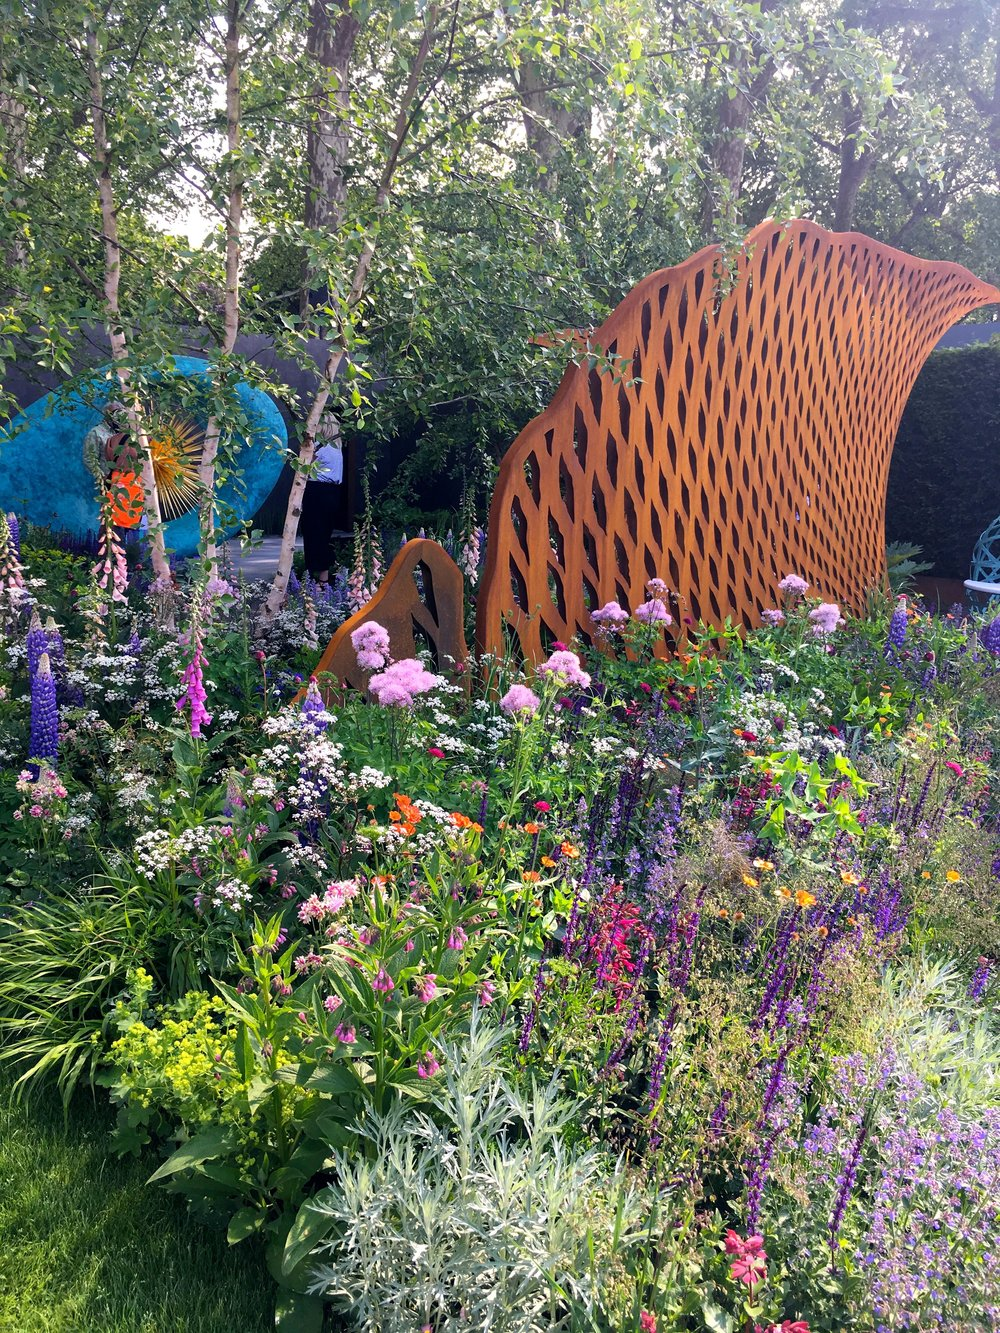 STEEL STRUCTURES IN THE BRONZE MEDAL DAVID HARBER & SAVILLS GARDEN